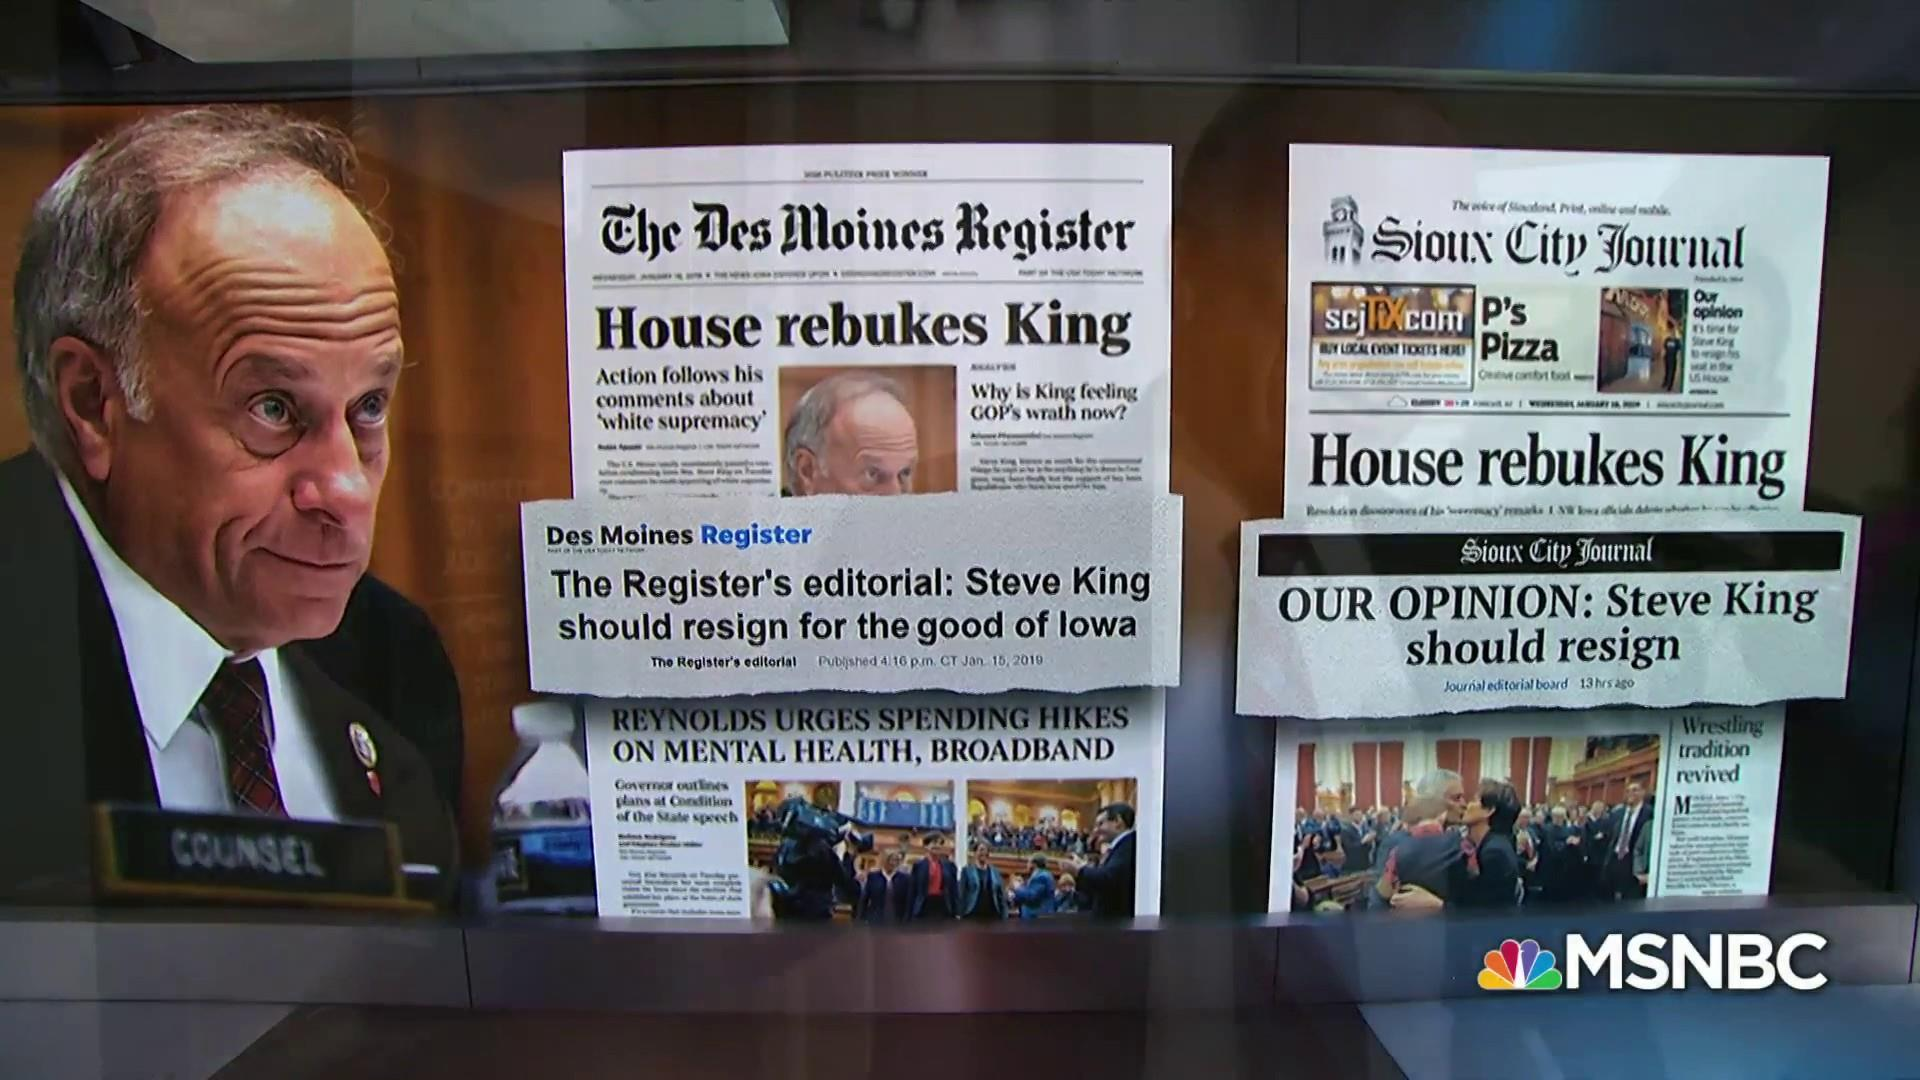 Rep. Steve King's constituents calling for his resignation